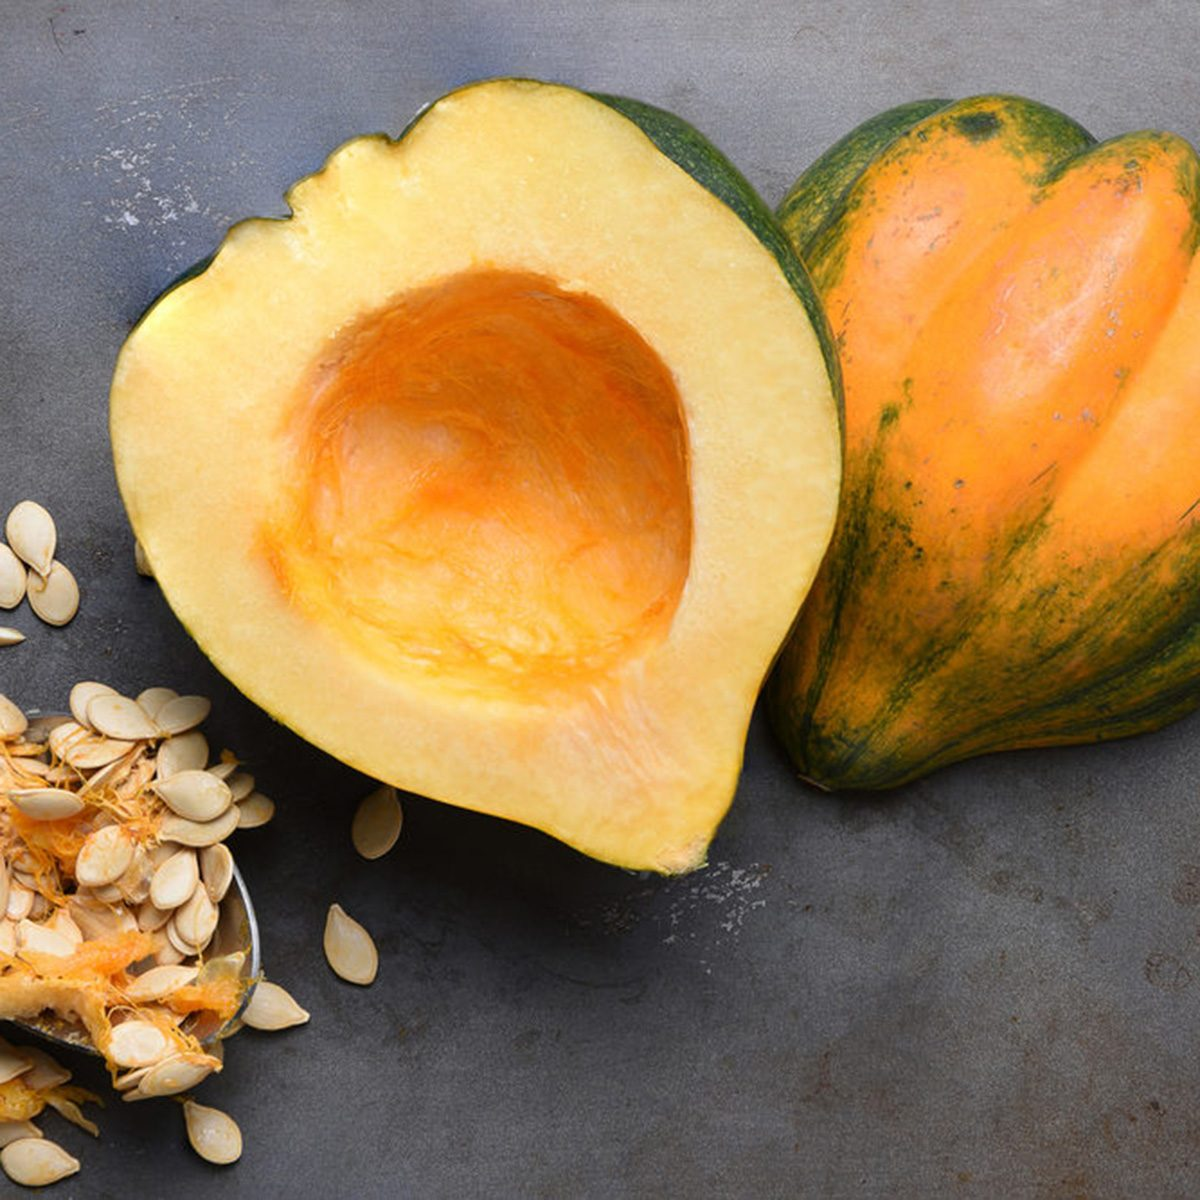 High angle view of an Acorn Squash cut in half on a metal baking sheet with a spoon and seeds scooped out.